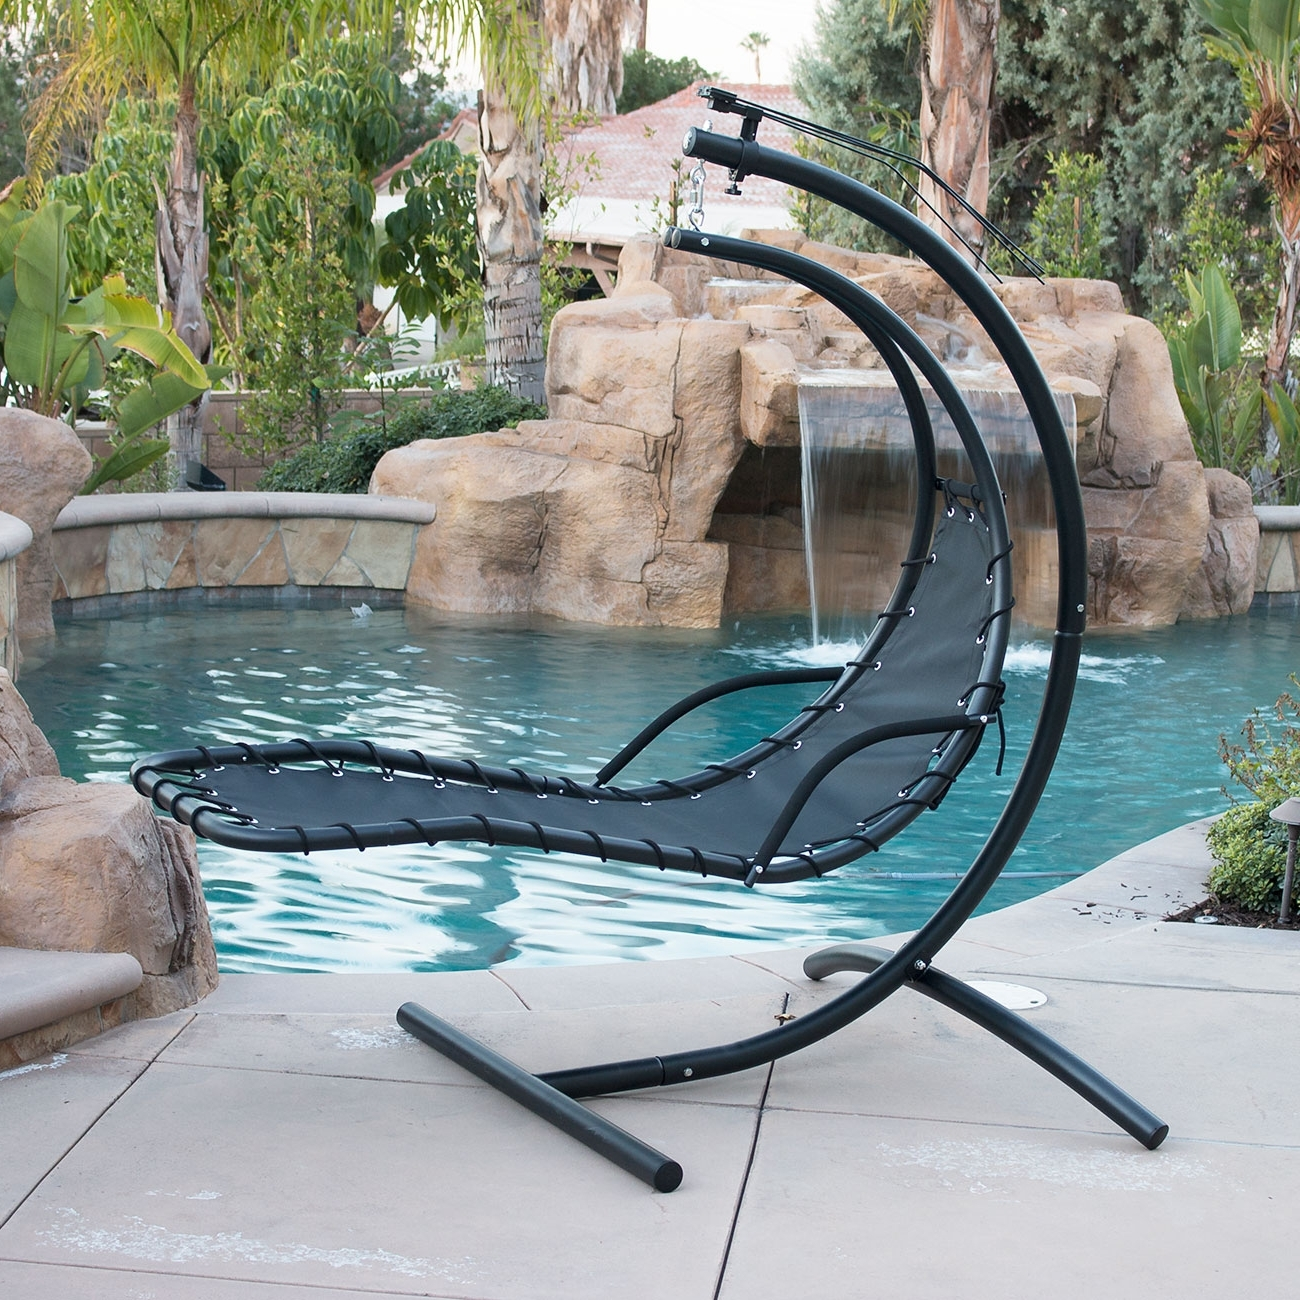 Hanging Chaise Lounge Chair Hammock Swing Canopy Glider Outdoor In Preferred Chaise Lounge Chairs For Sunroom (View 13 of 15)